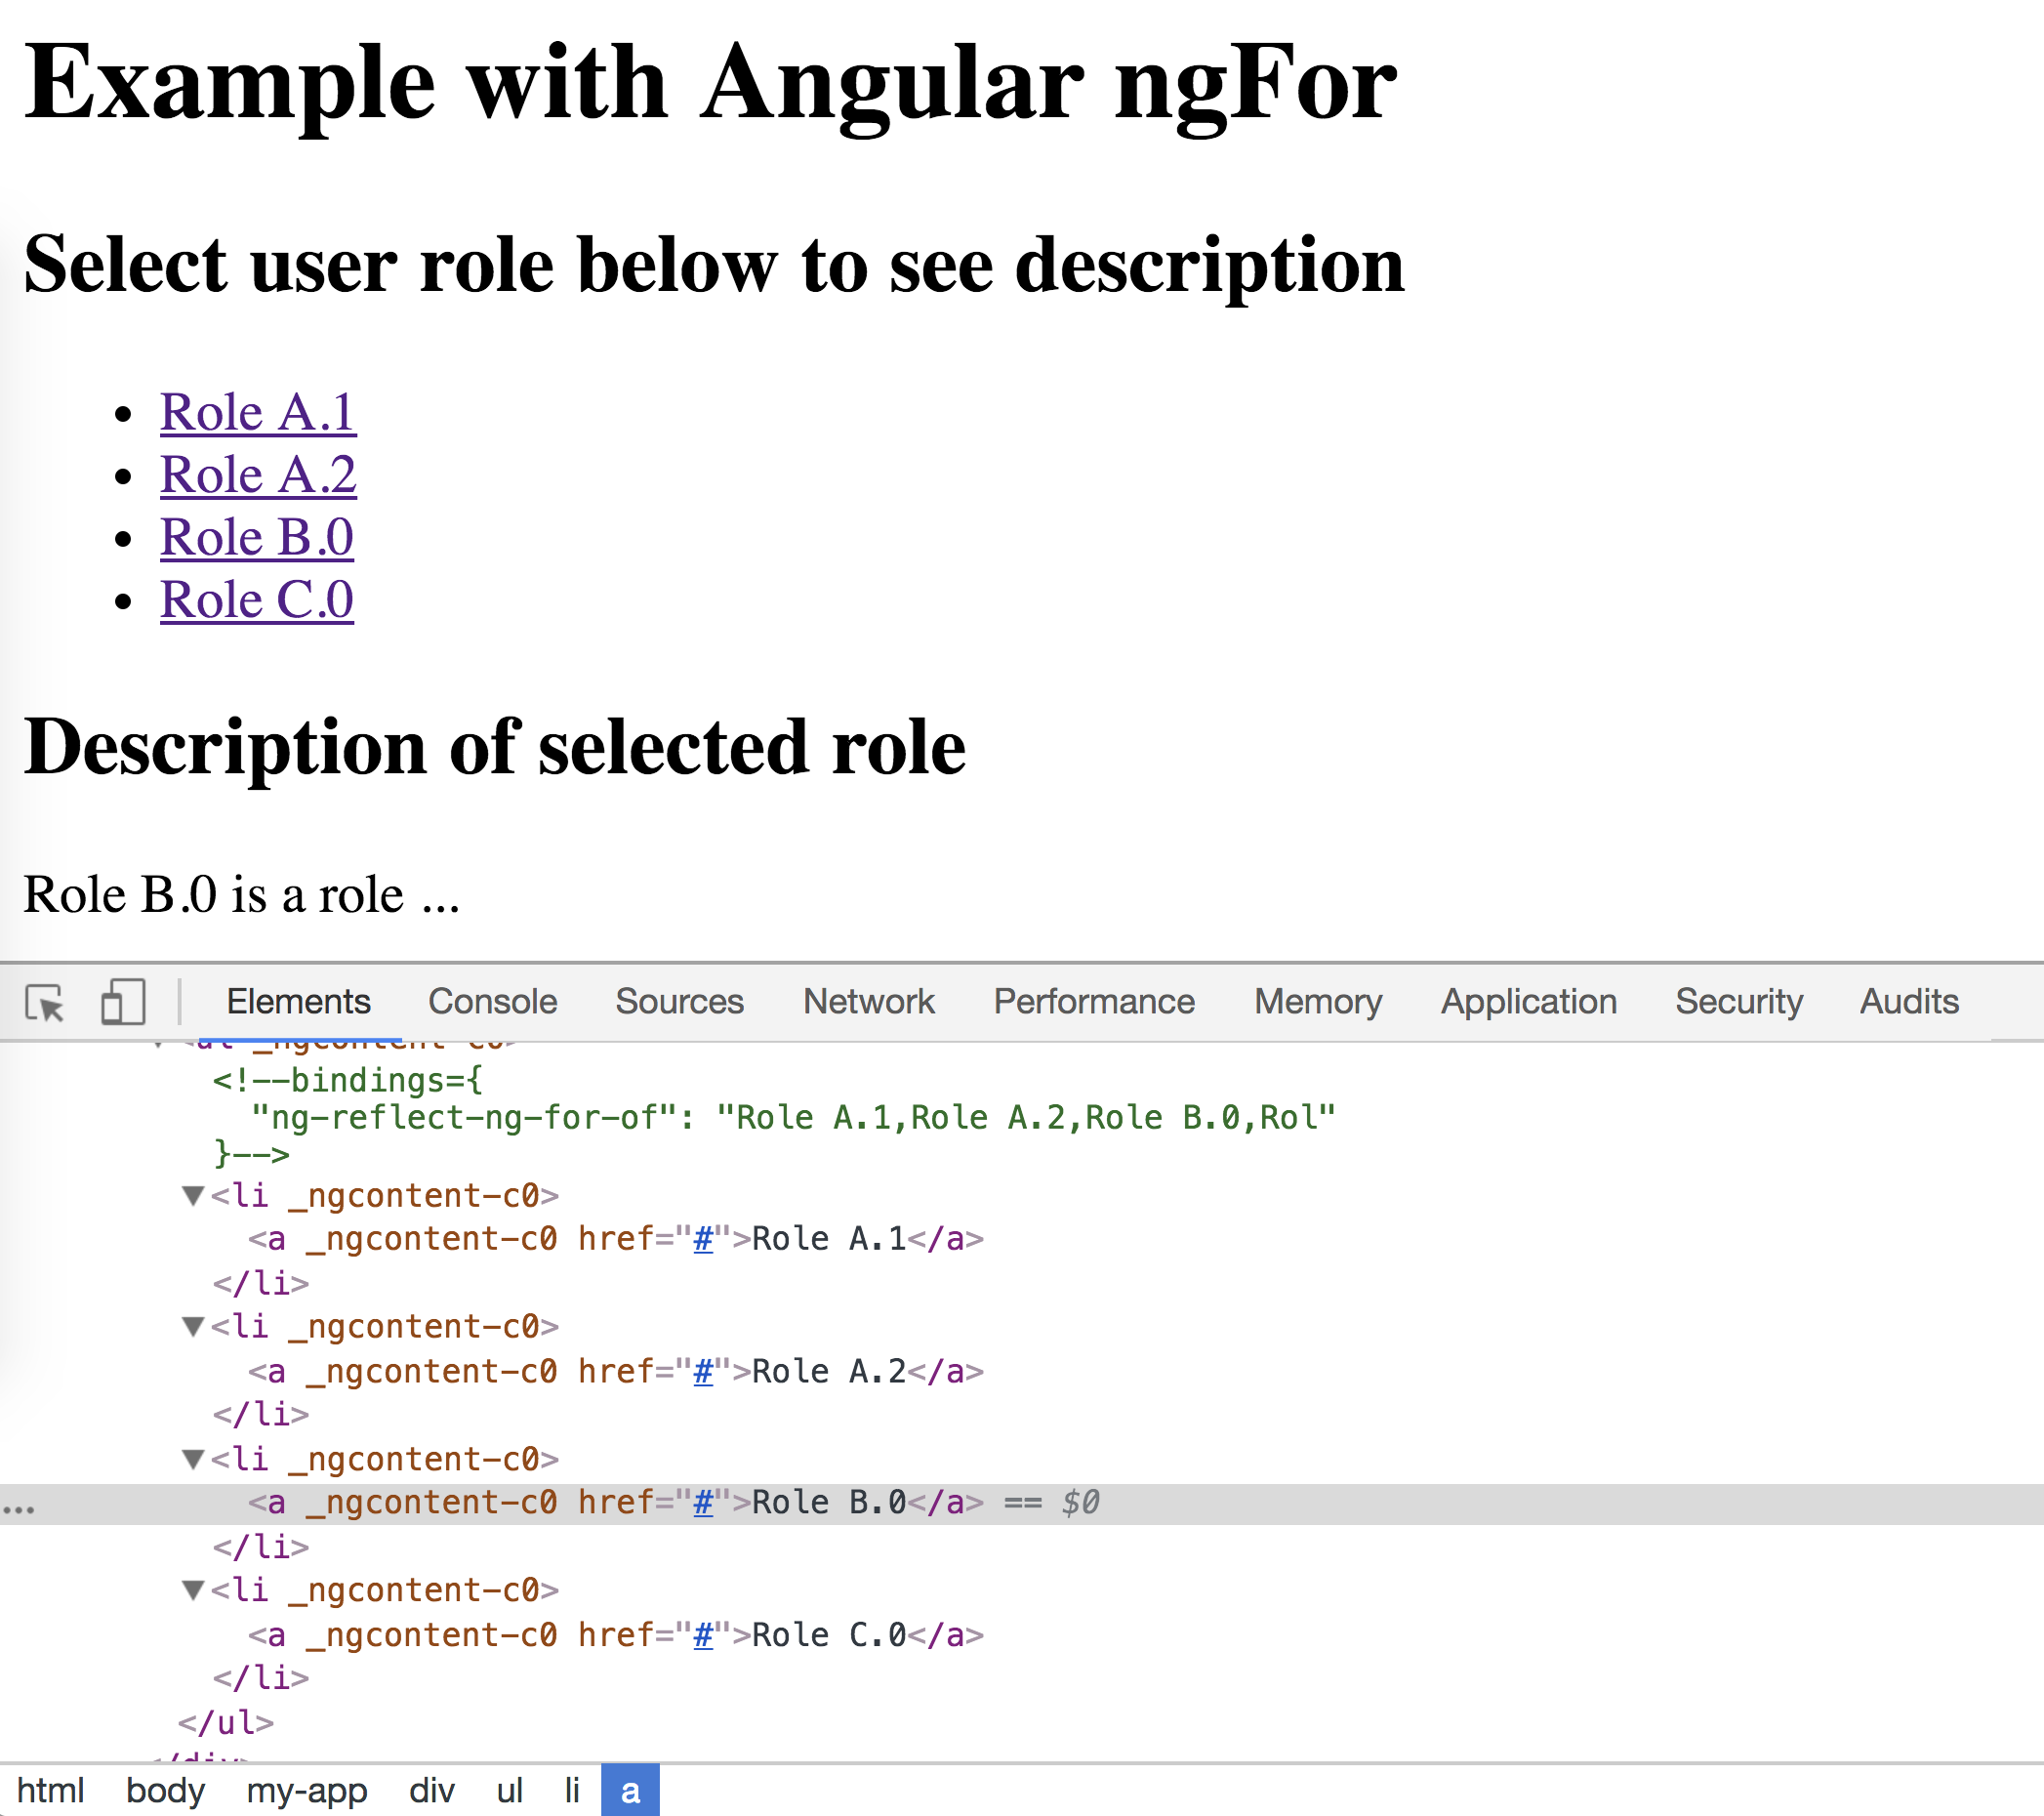 angularAppList_1.png